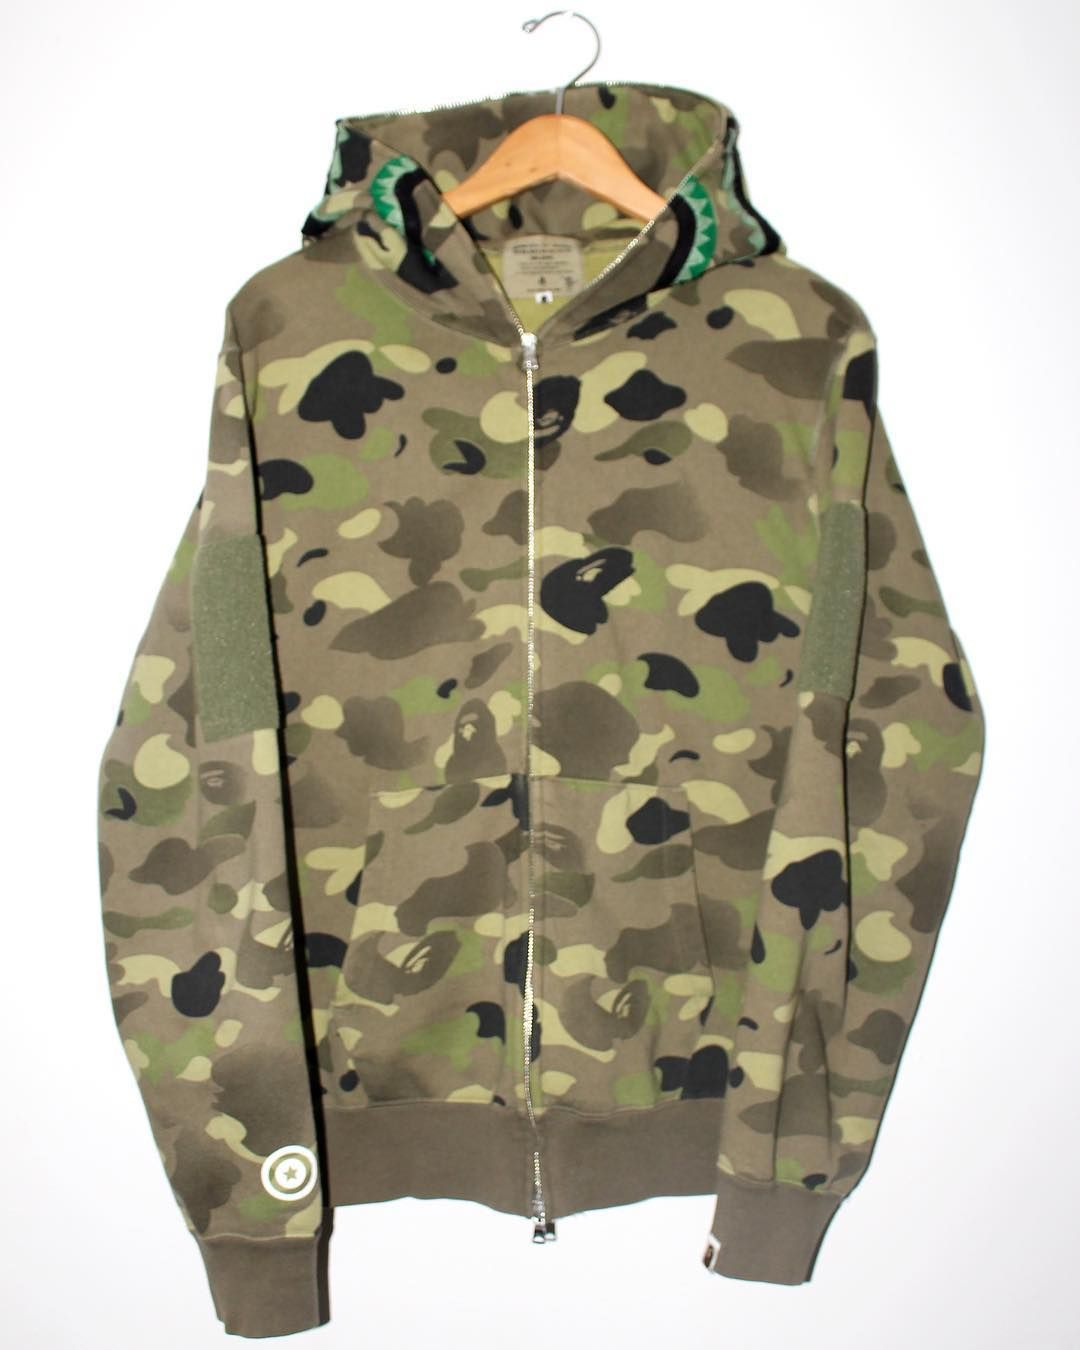 0edf6c9ed289 BAPE GREEN GRADIENT CAMO NYC EXCLUSIVE SHARK HOODIE AW2010 Bape Shark  Hoodie with NYC Exclusive gradient